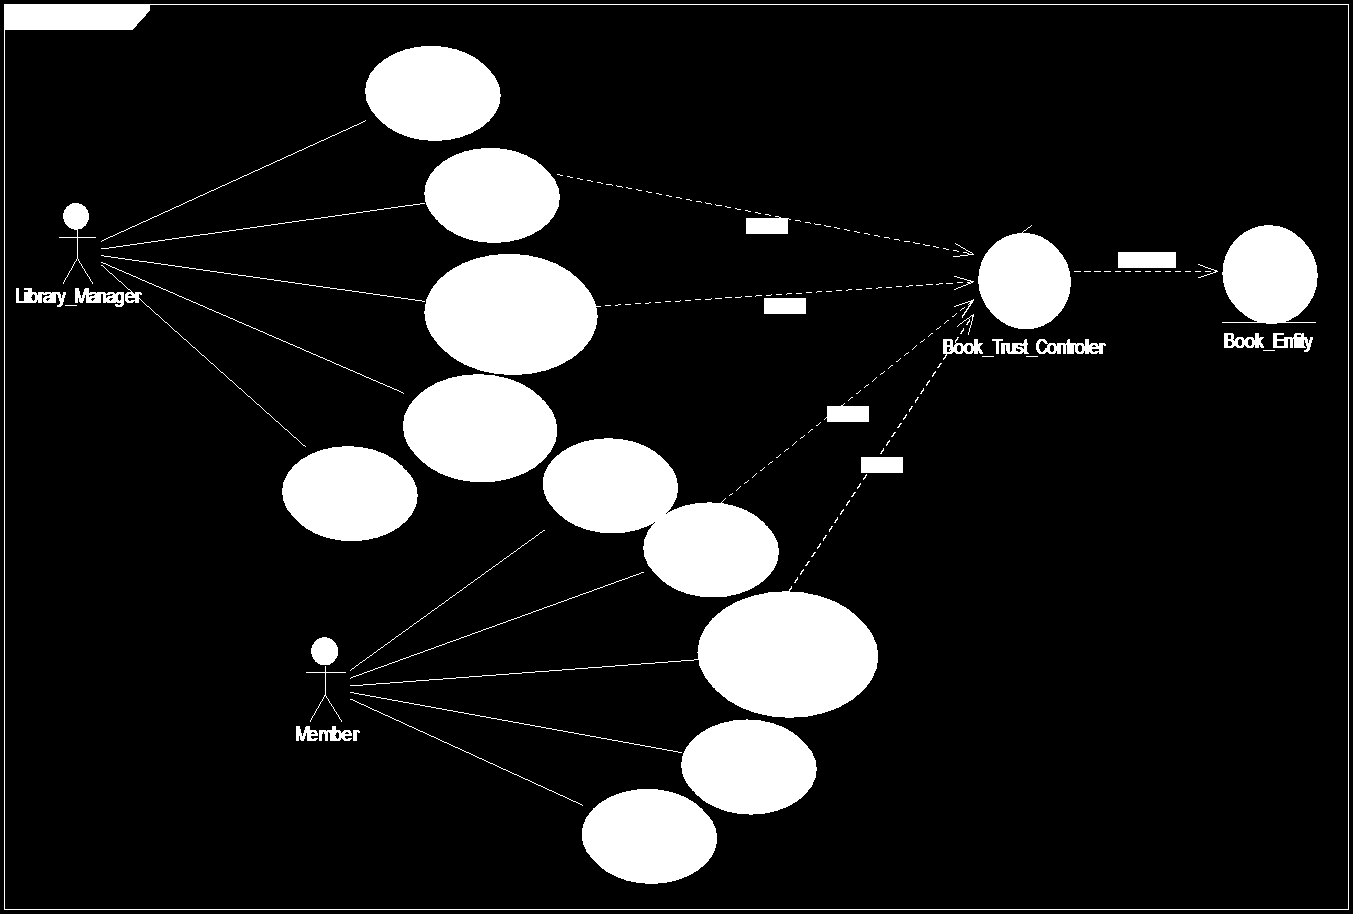 Fig 1: Diagram of the Relationship between the use cases of the Library Management System 5.